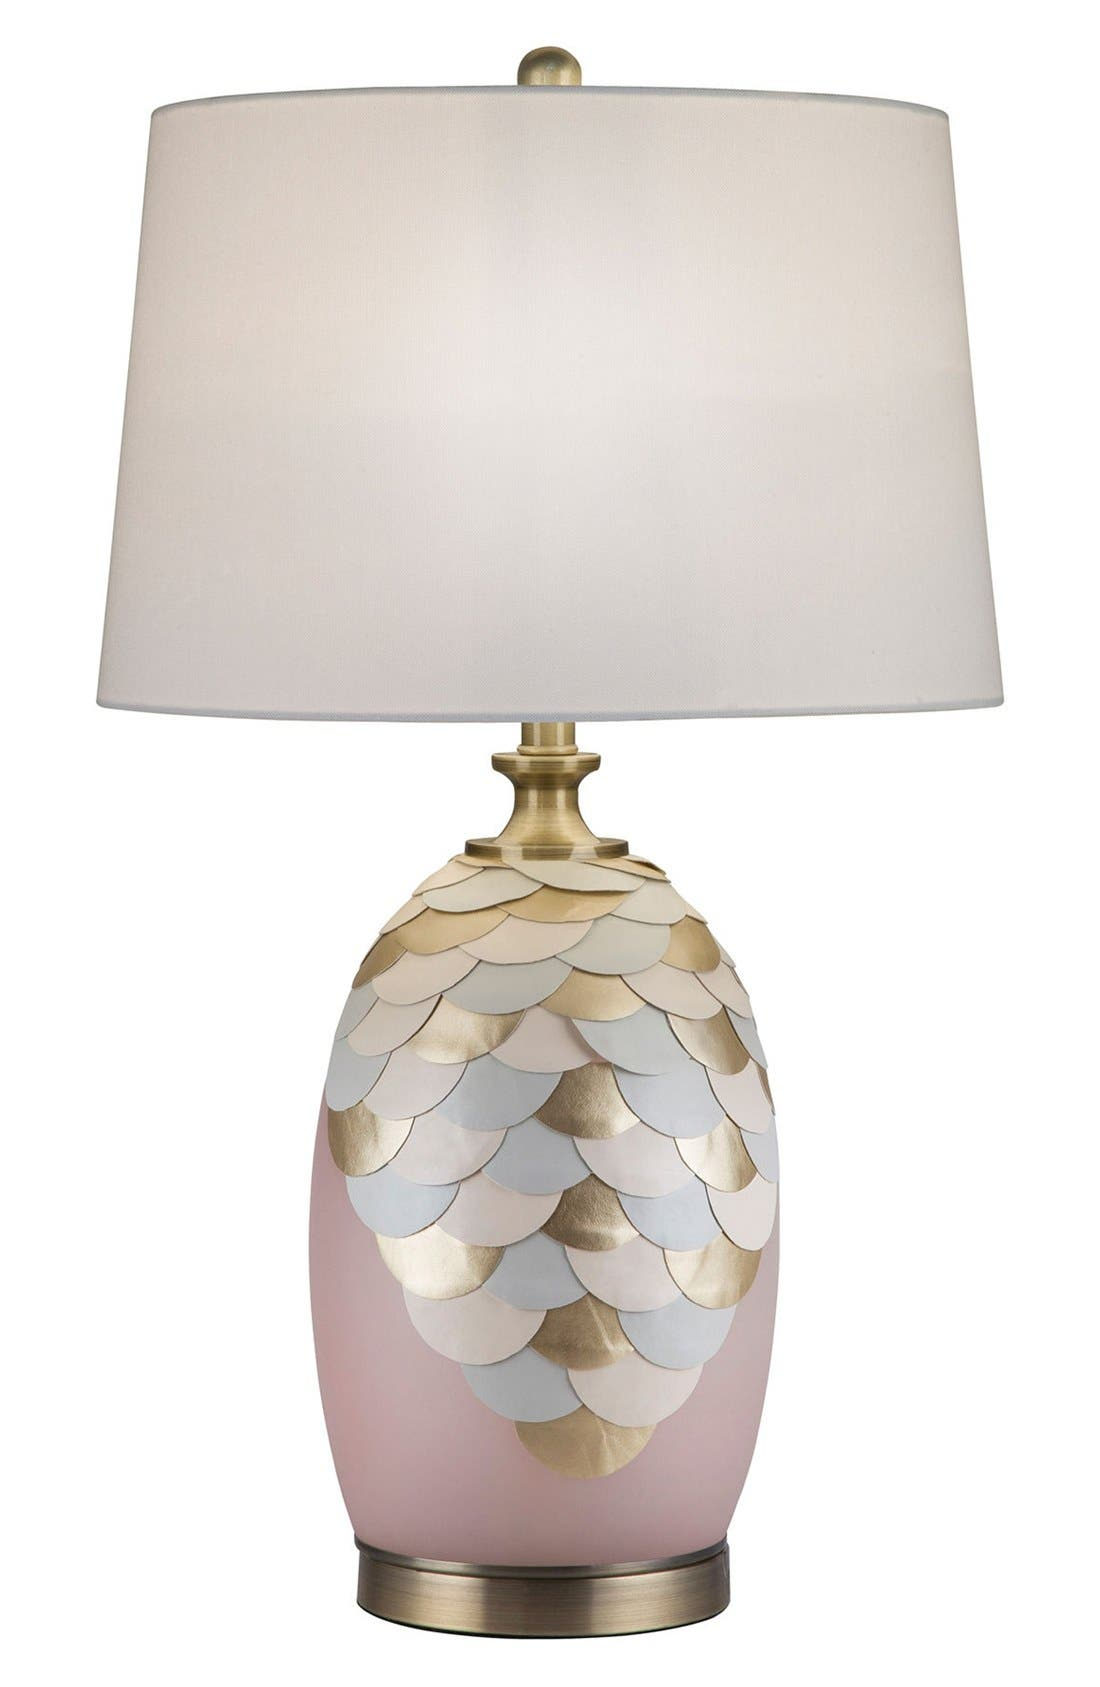 JALEXANDER LIGHTING JAlexander Rose Quartz Table Lamp with